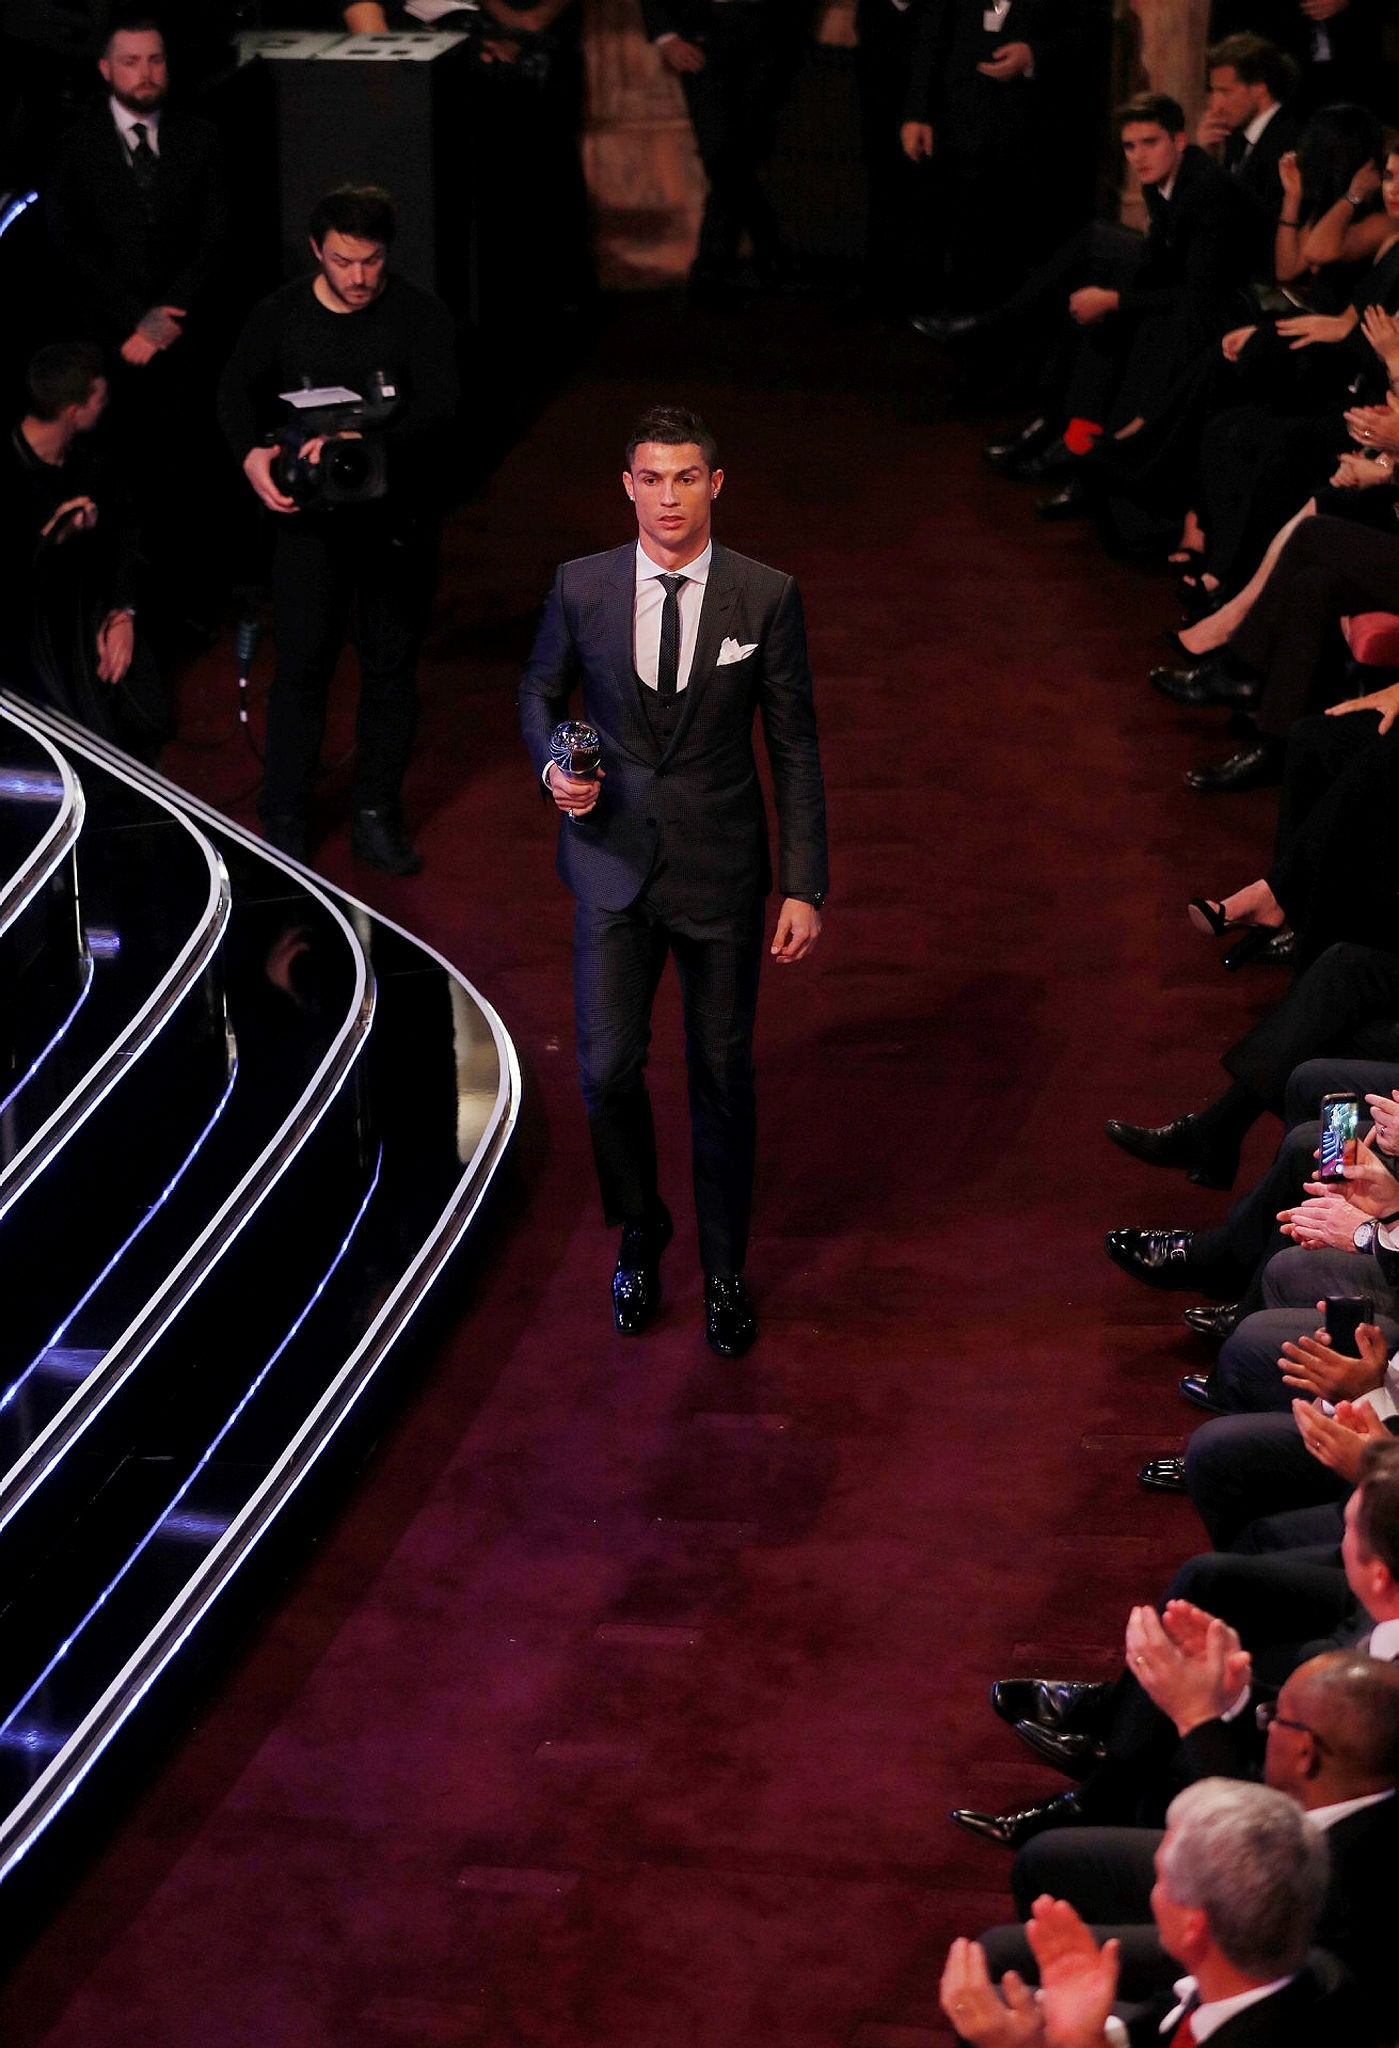 Real Madridu2019s Cristiano Ronaldo after being selected in the FIFA FIFPro World 11 during the awards (Reuters Photo)